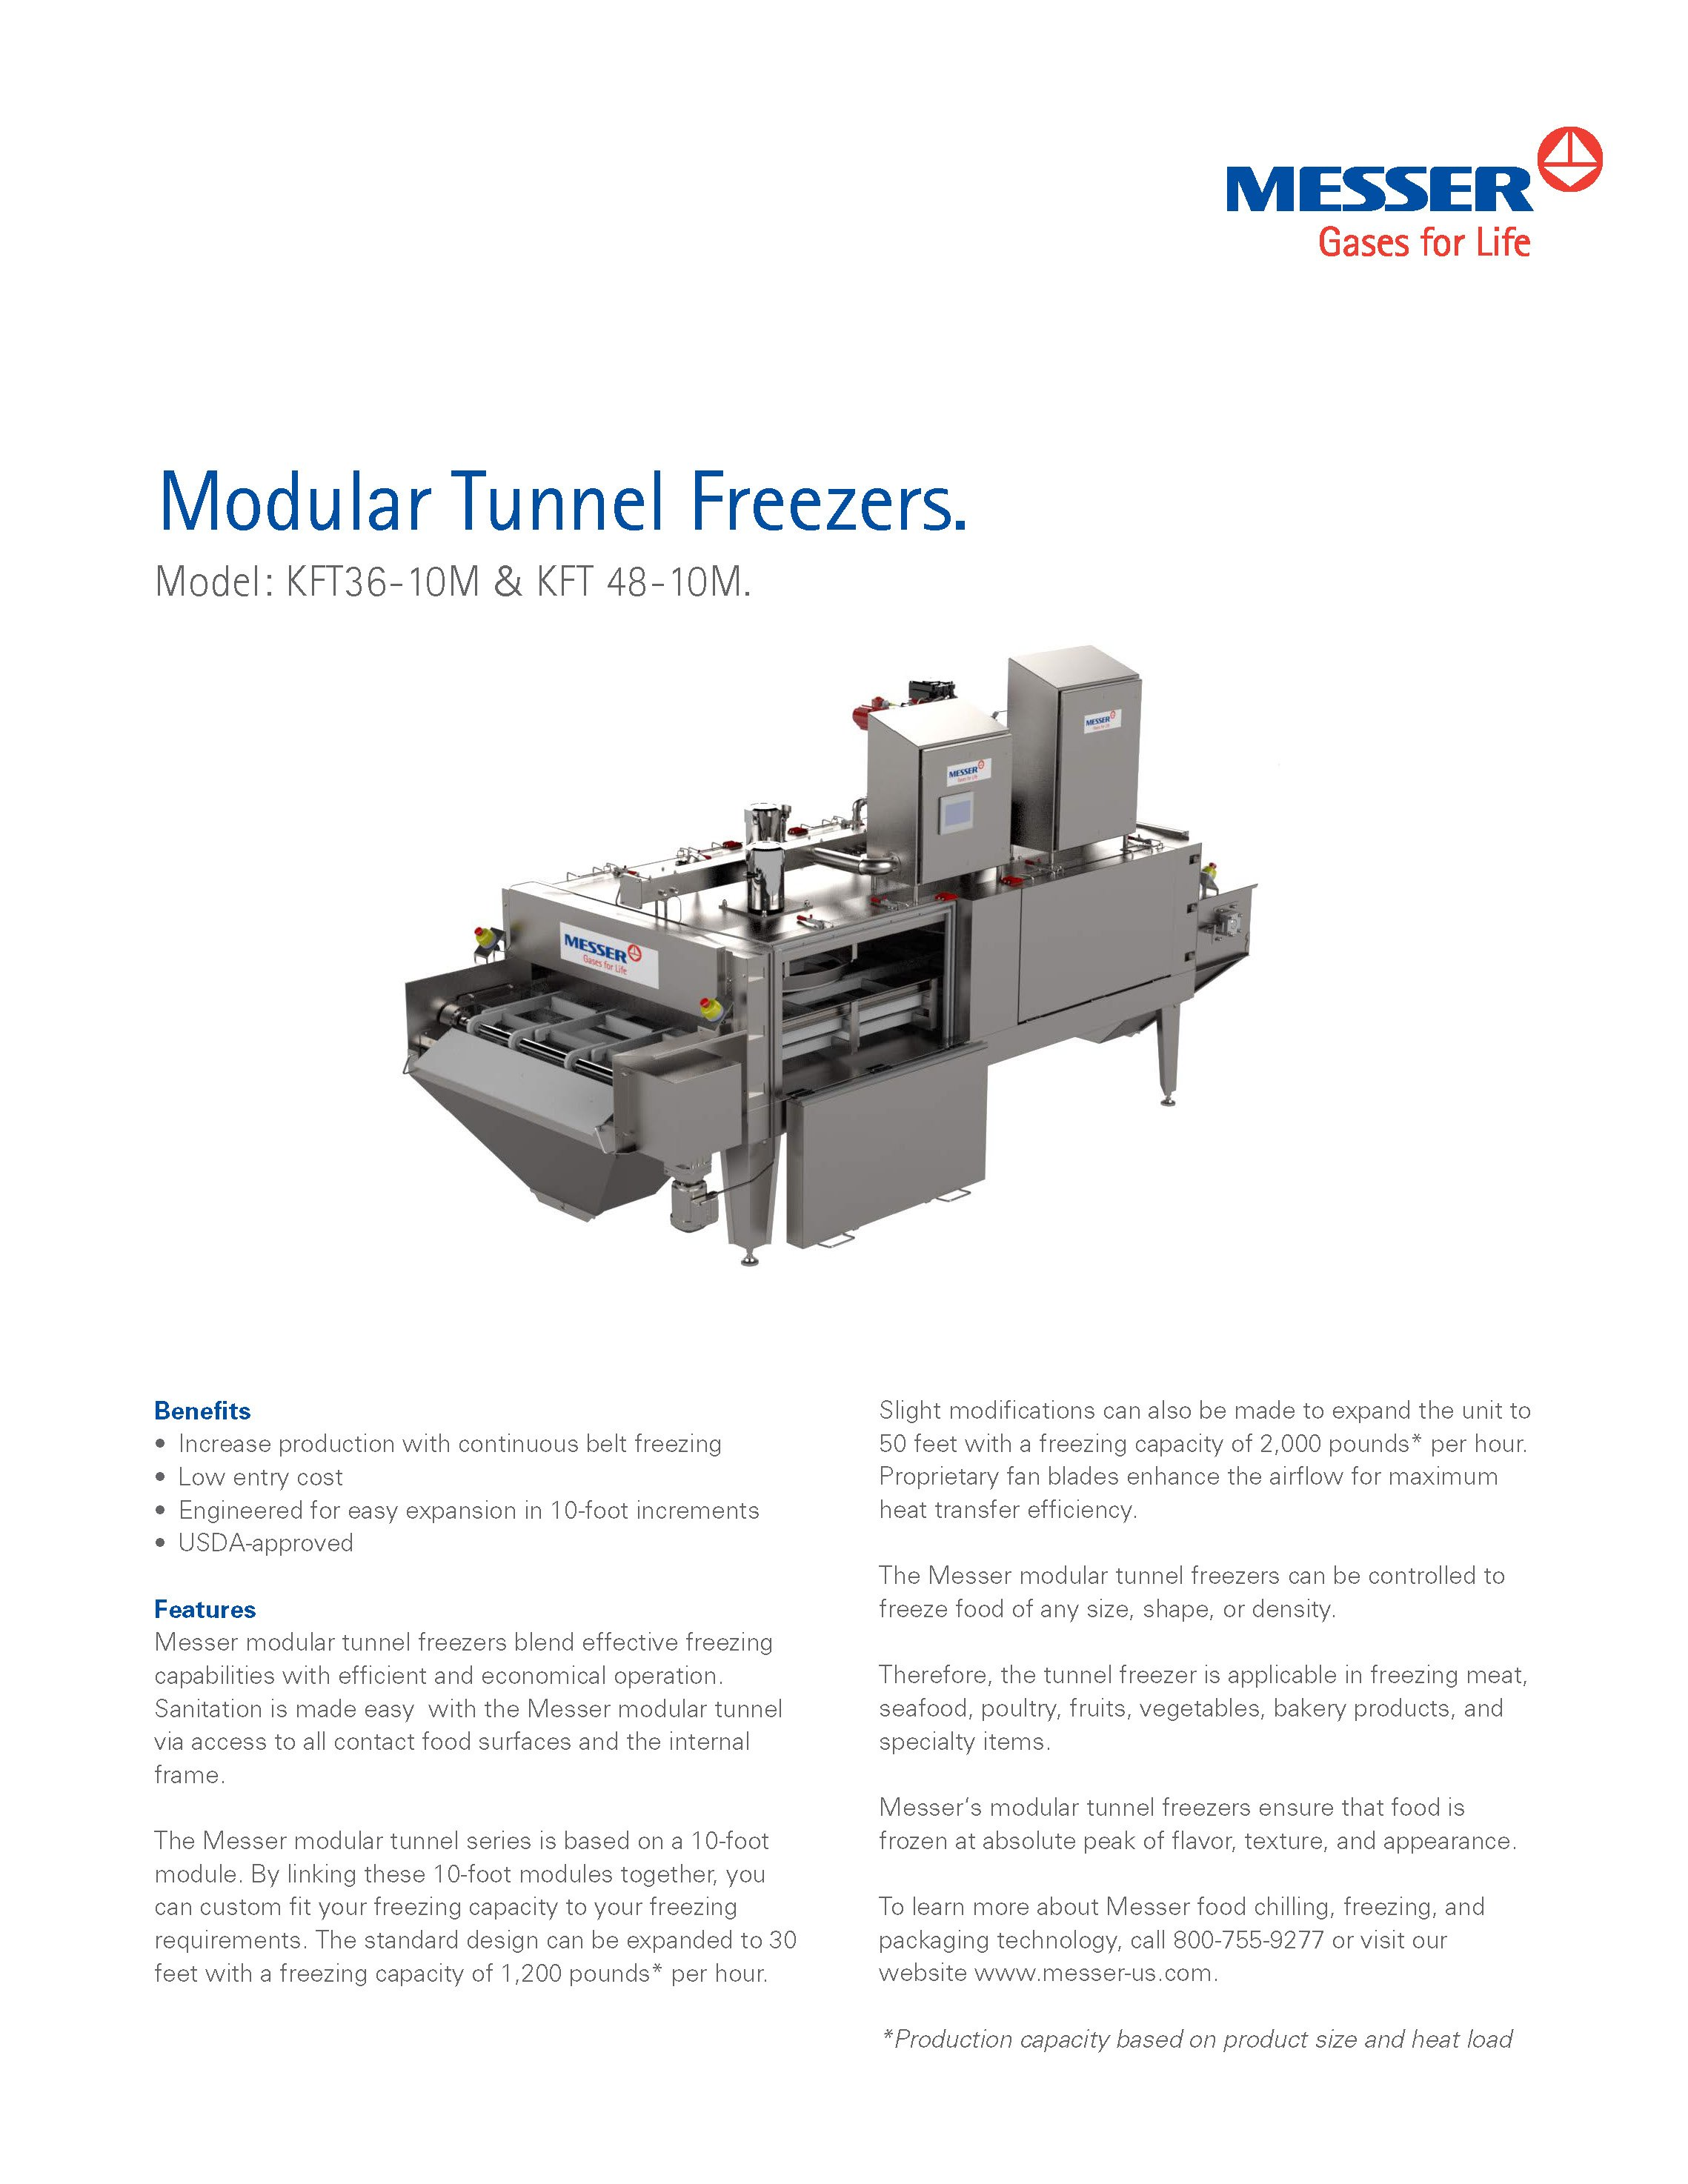 Messer's Modular Tunnel Freezer